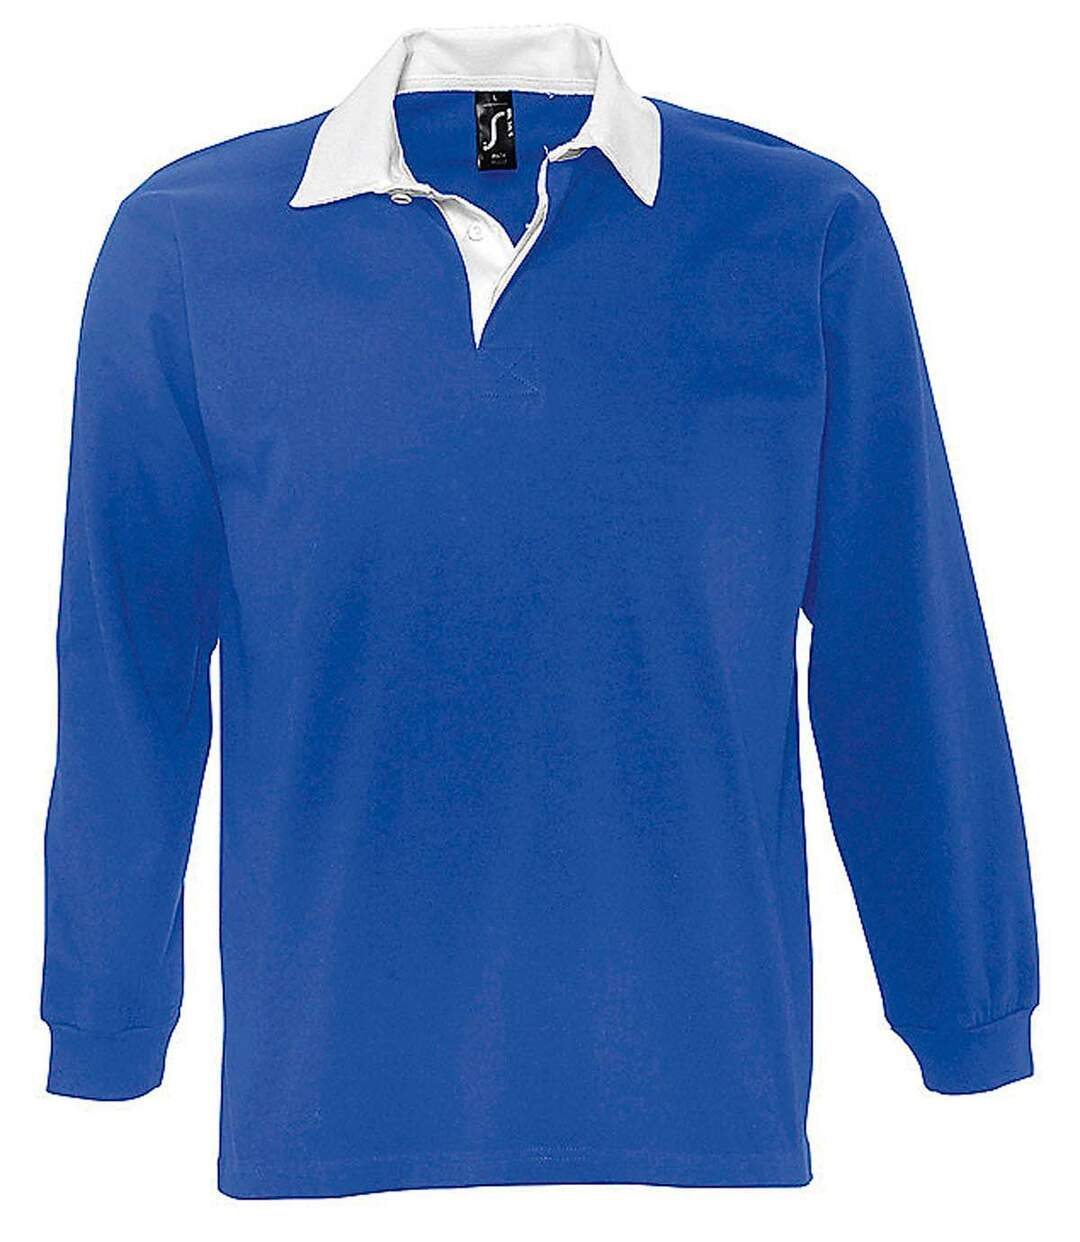 Polo rugby manches longues HOMME - 11313 - bleu royal